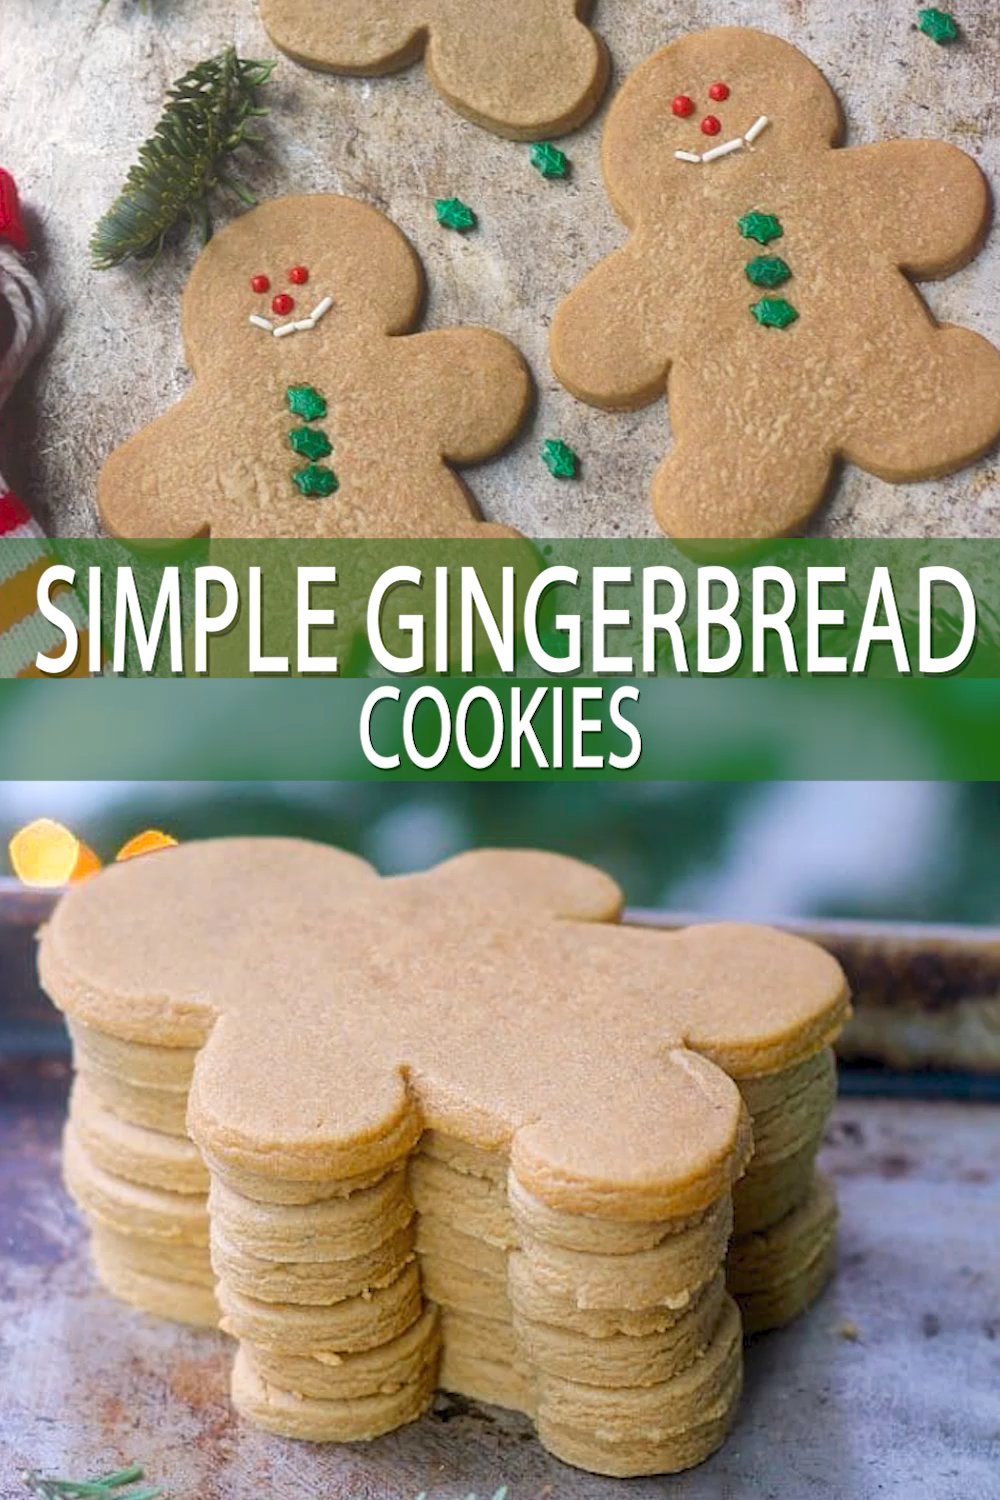 Easy Gingerbread Cookies without Molasses